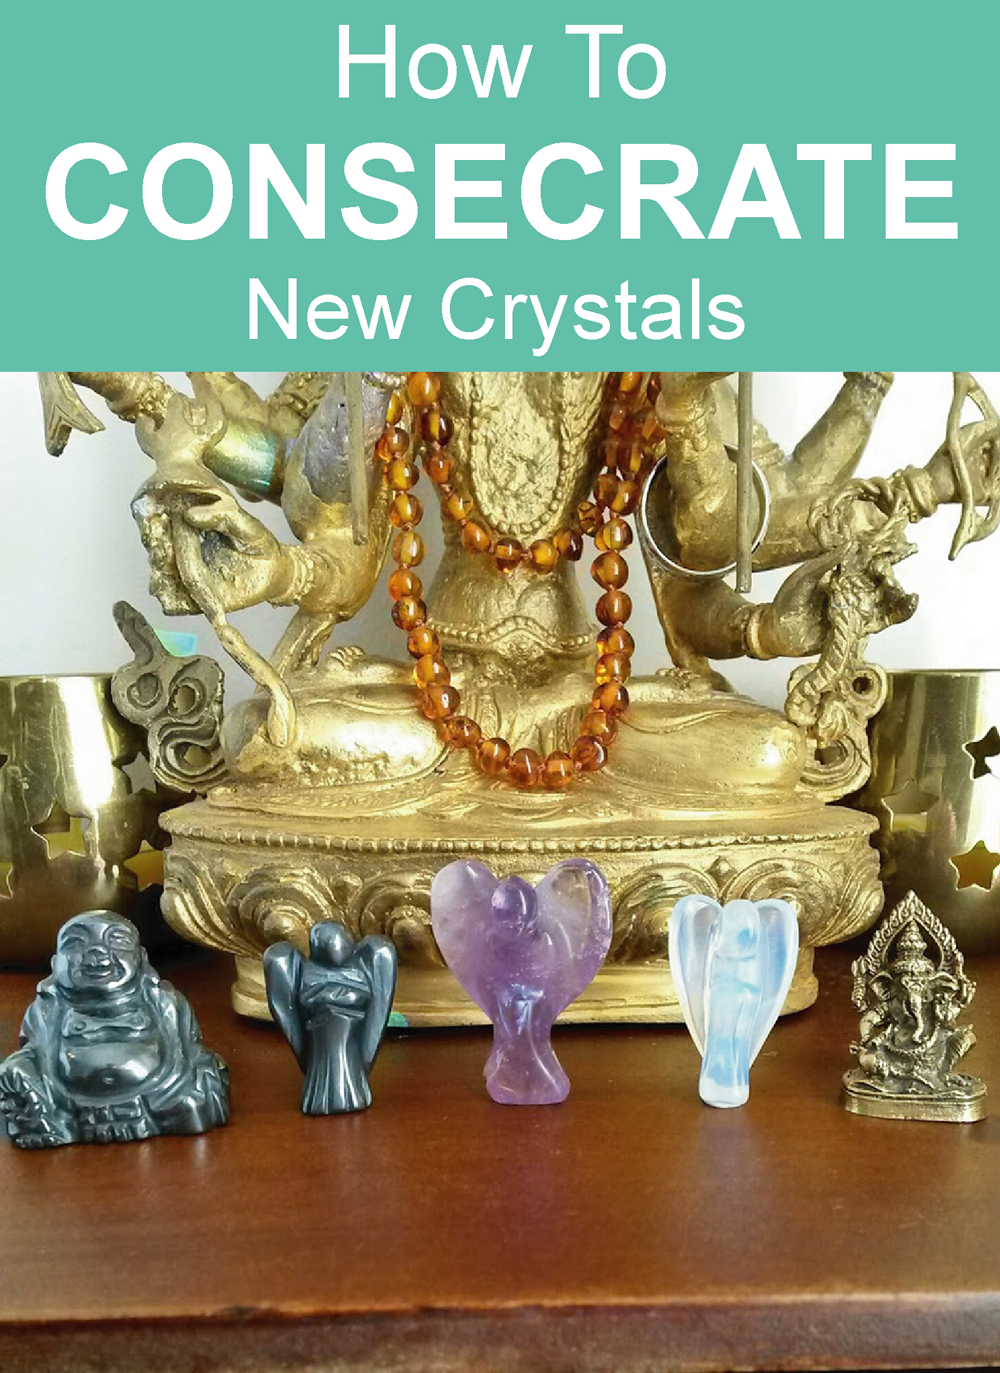 How To Consecrate New Crystals and Healing Stones